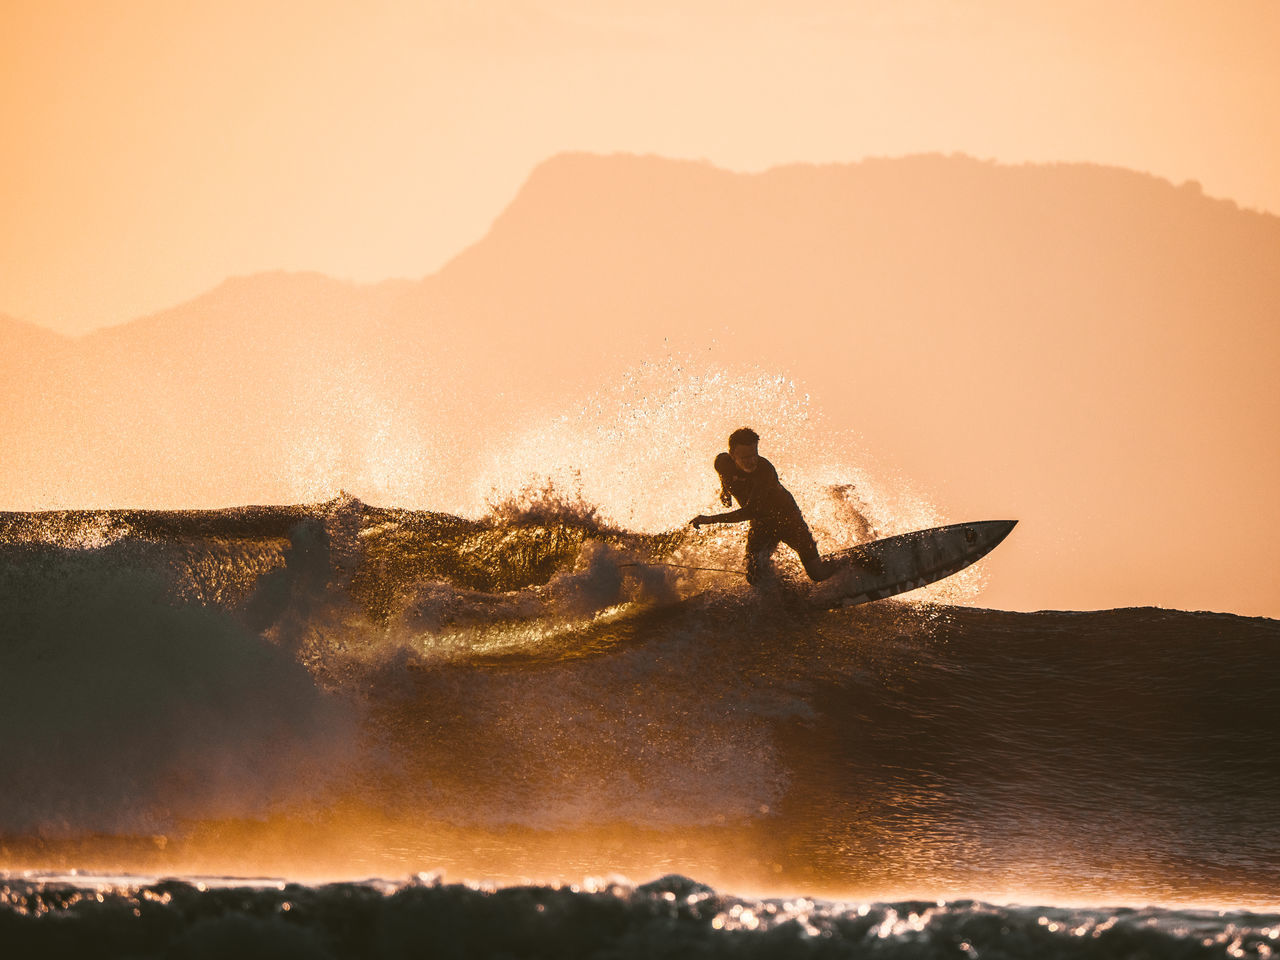 water, motion, sky, sport, real people, aquatic sport, sunset, nature, surfing, lifestyles, sea, one person, extreme sports, wave, splashing, adventure, beauty in nature, mountain, skill, outdoors, power in nature